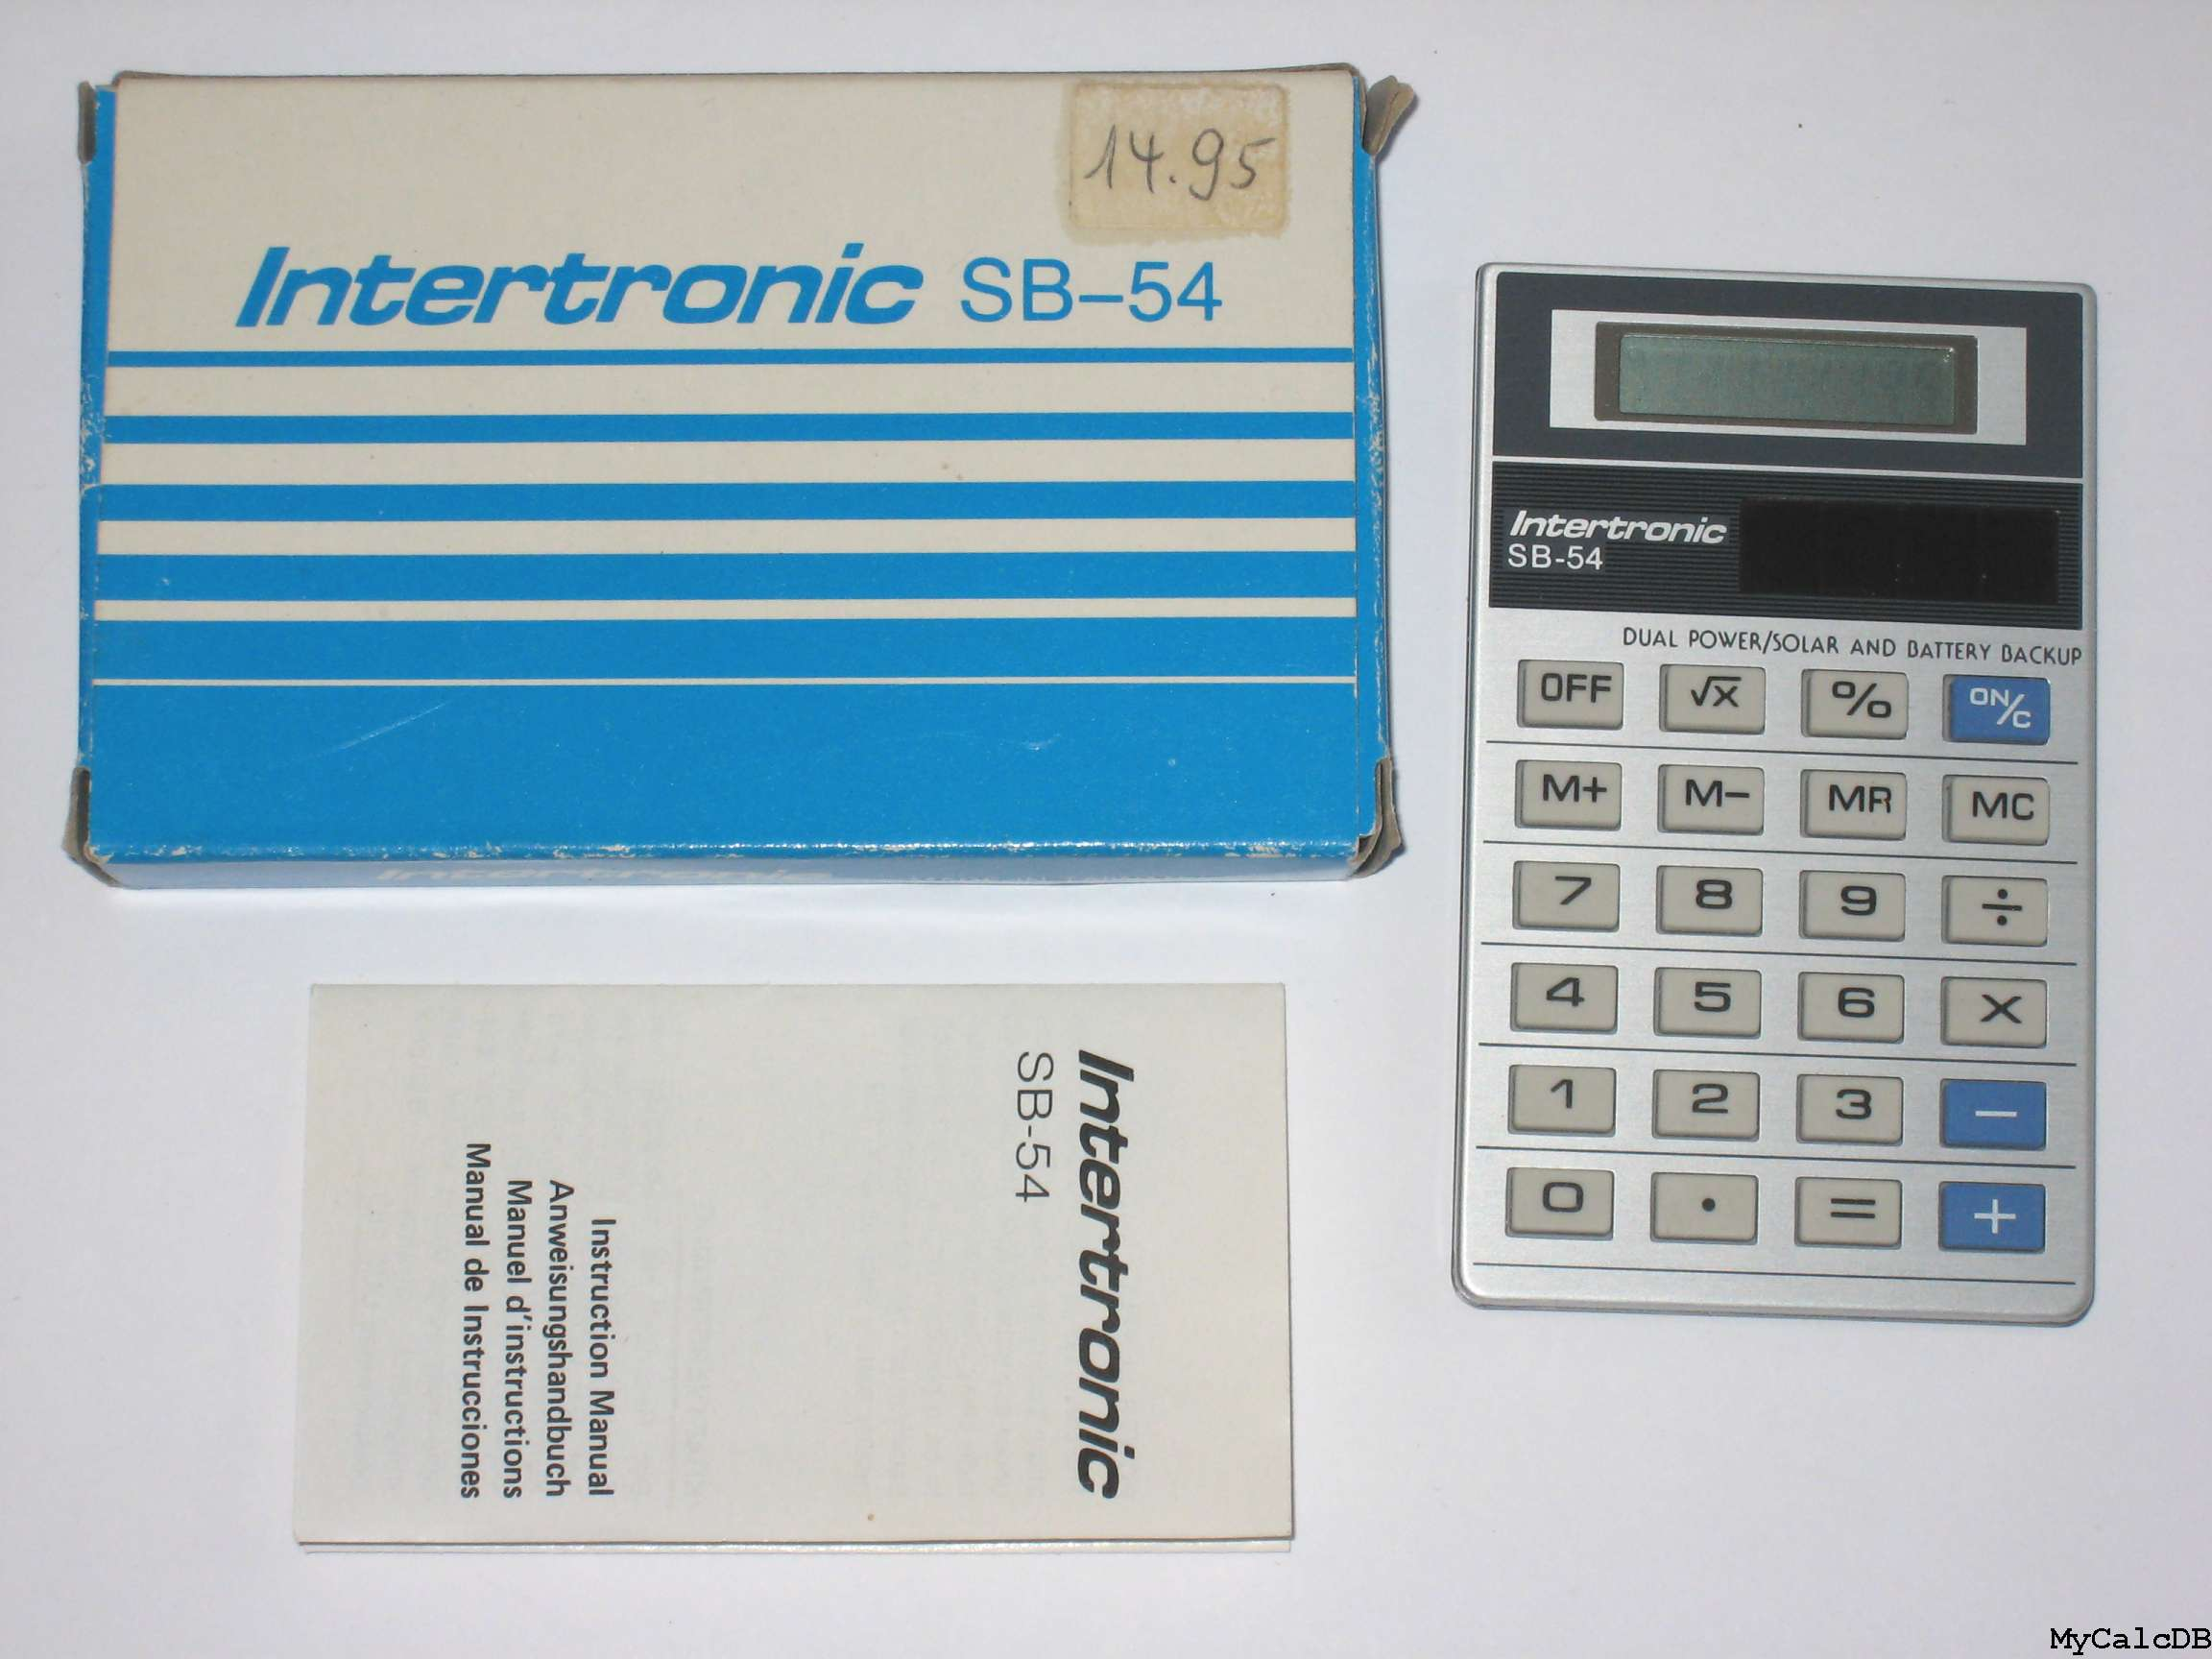 Intertronic SB-54